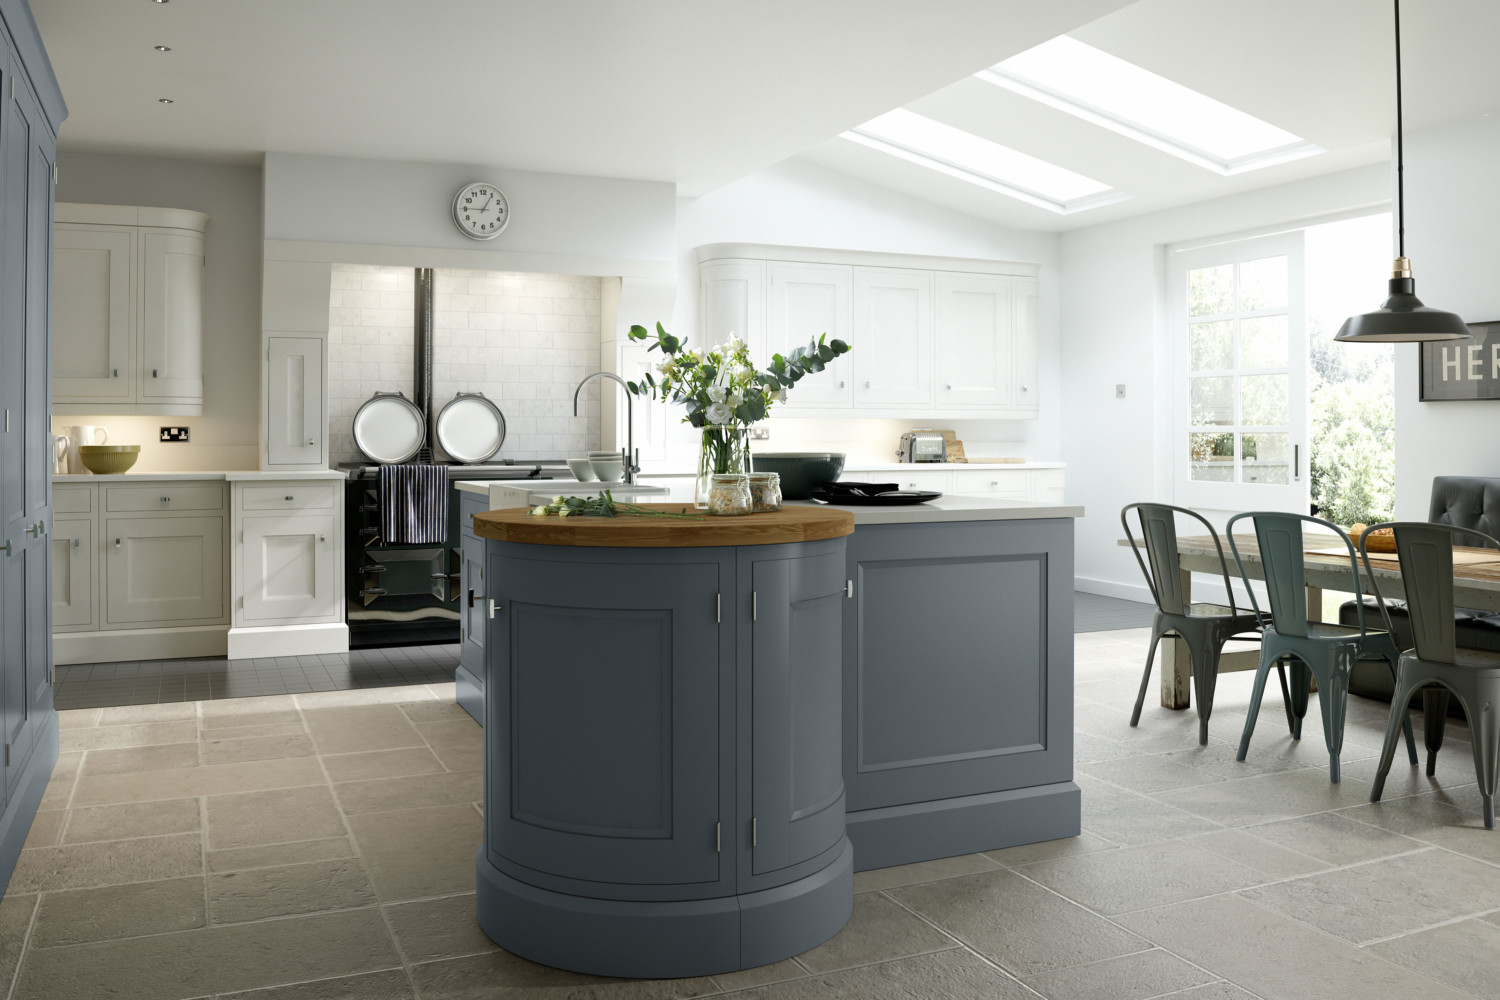 Kitchens Southampton | Blue Kitchens | Shaker kitchens